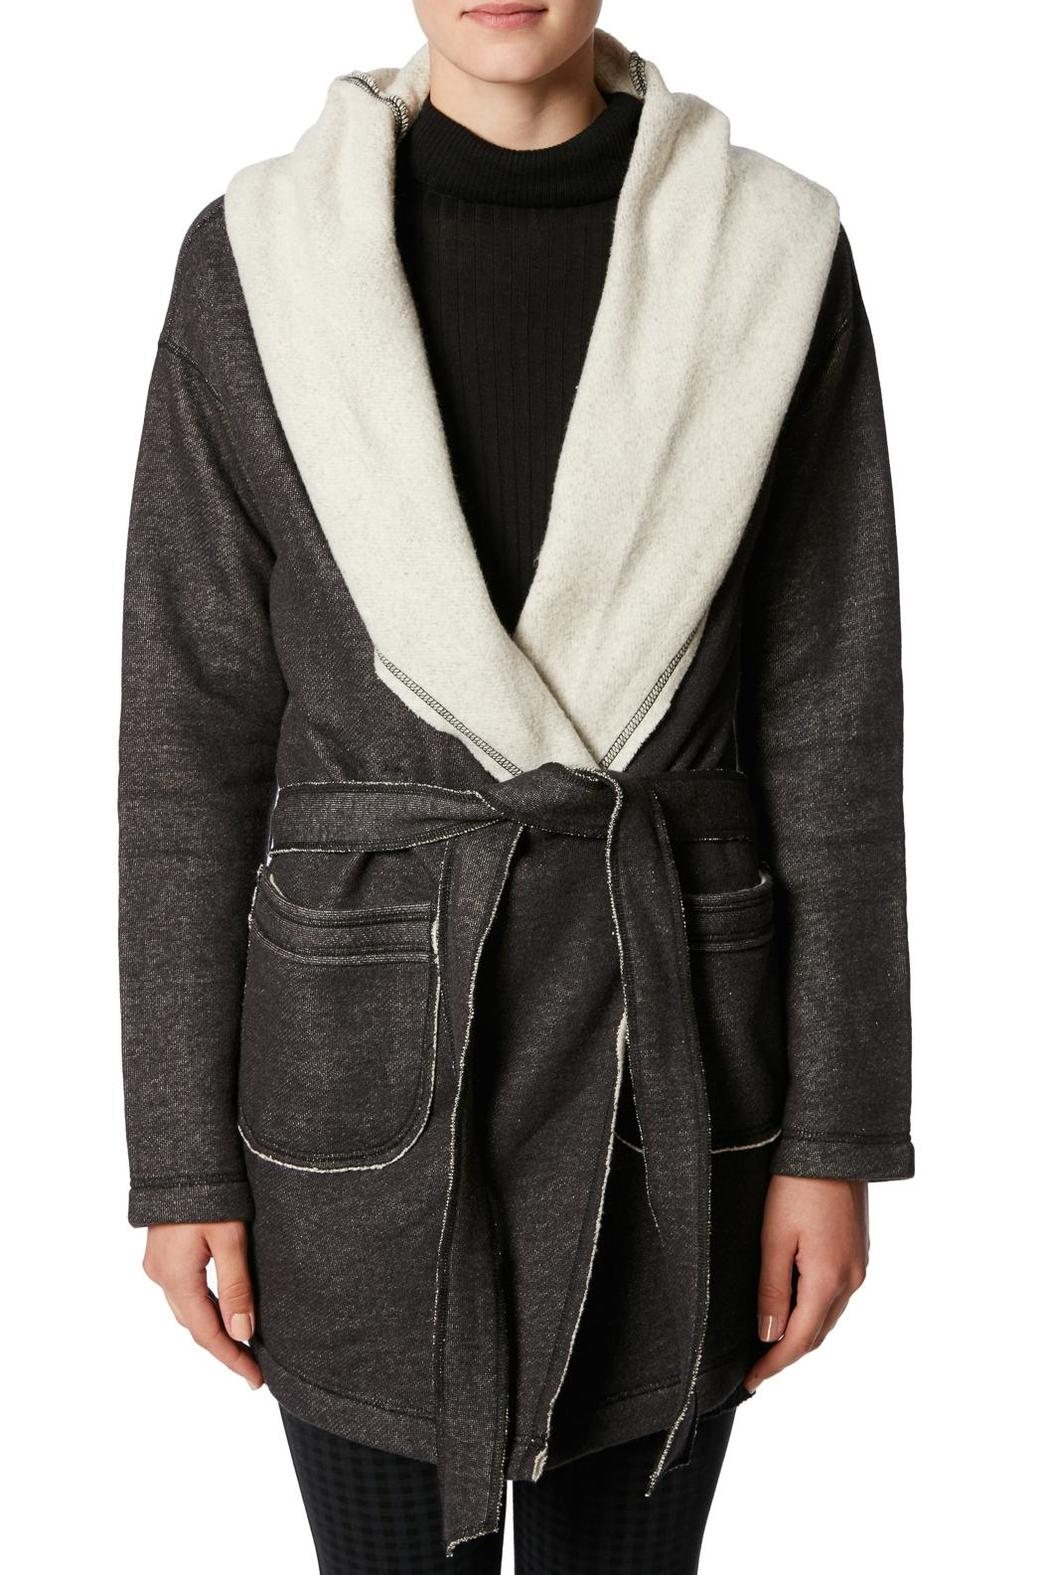 Sanctuary Fleece Wrap Jacket from Orange County by Just Basics ...